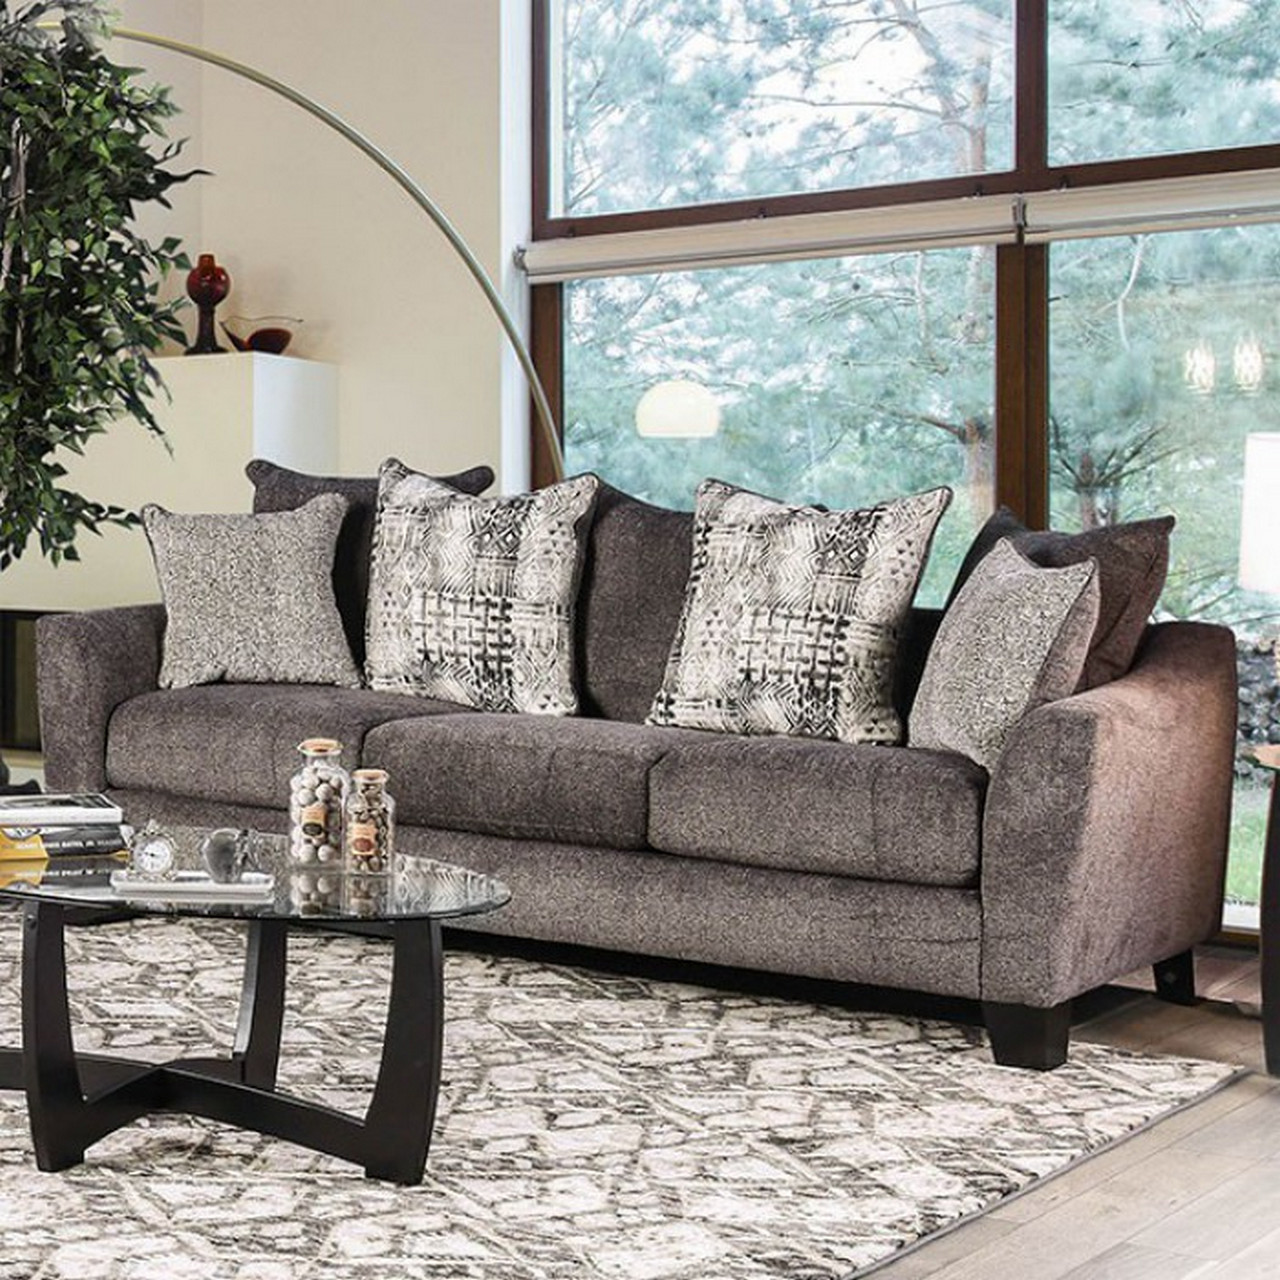 Loose Pillow Back Sofa: Felicity Contemporary Grey Chenille Sofa With Loose Pillow